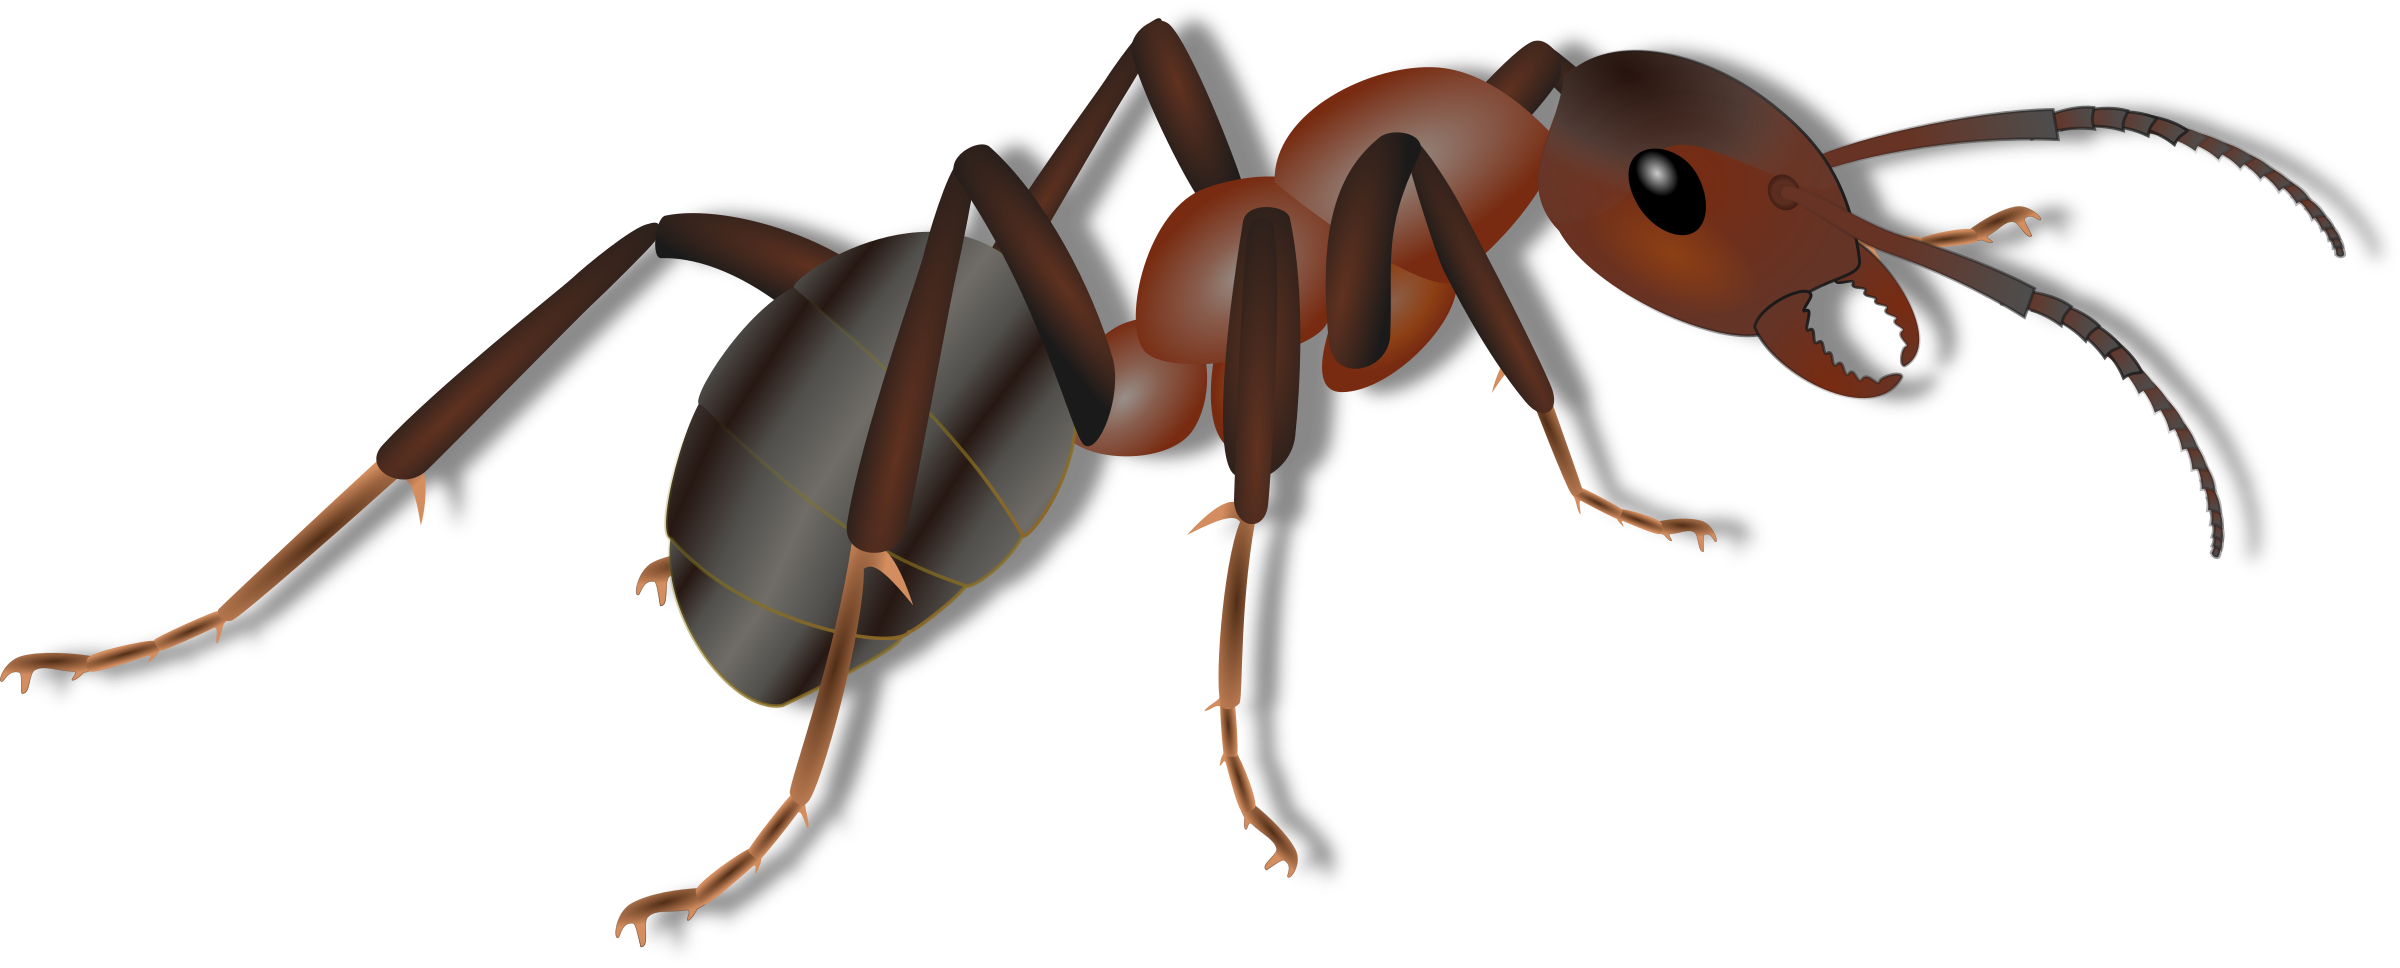 Ant clipart invertebrate Ameise Clipart Ameise Ant Ant